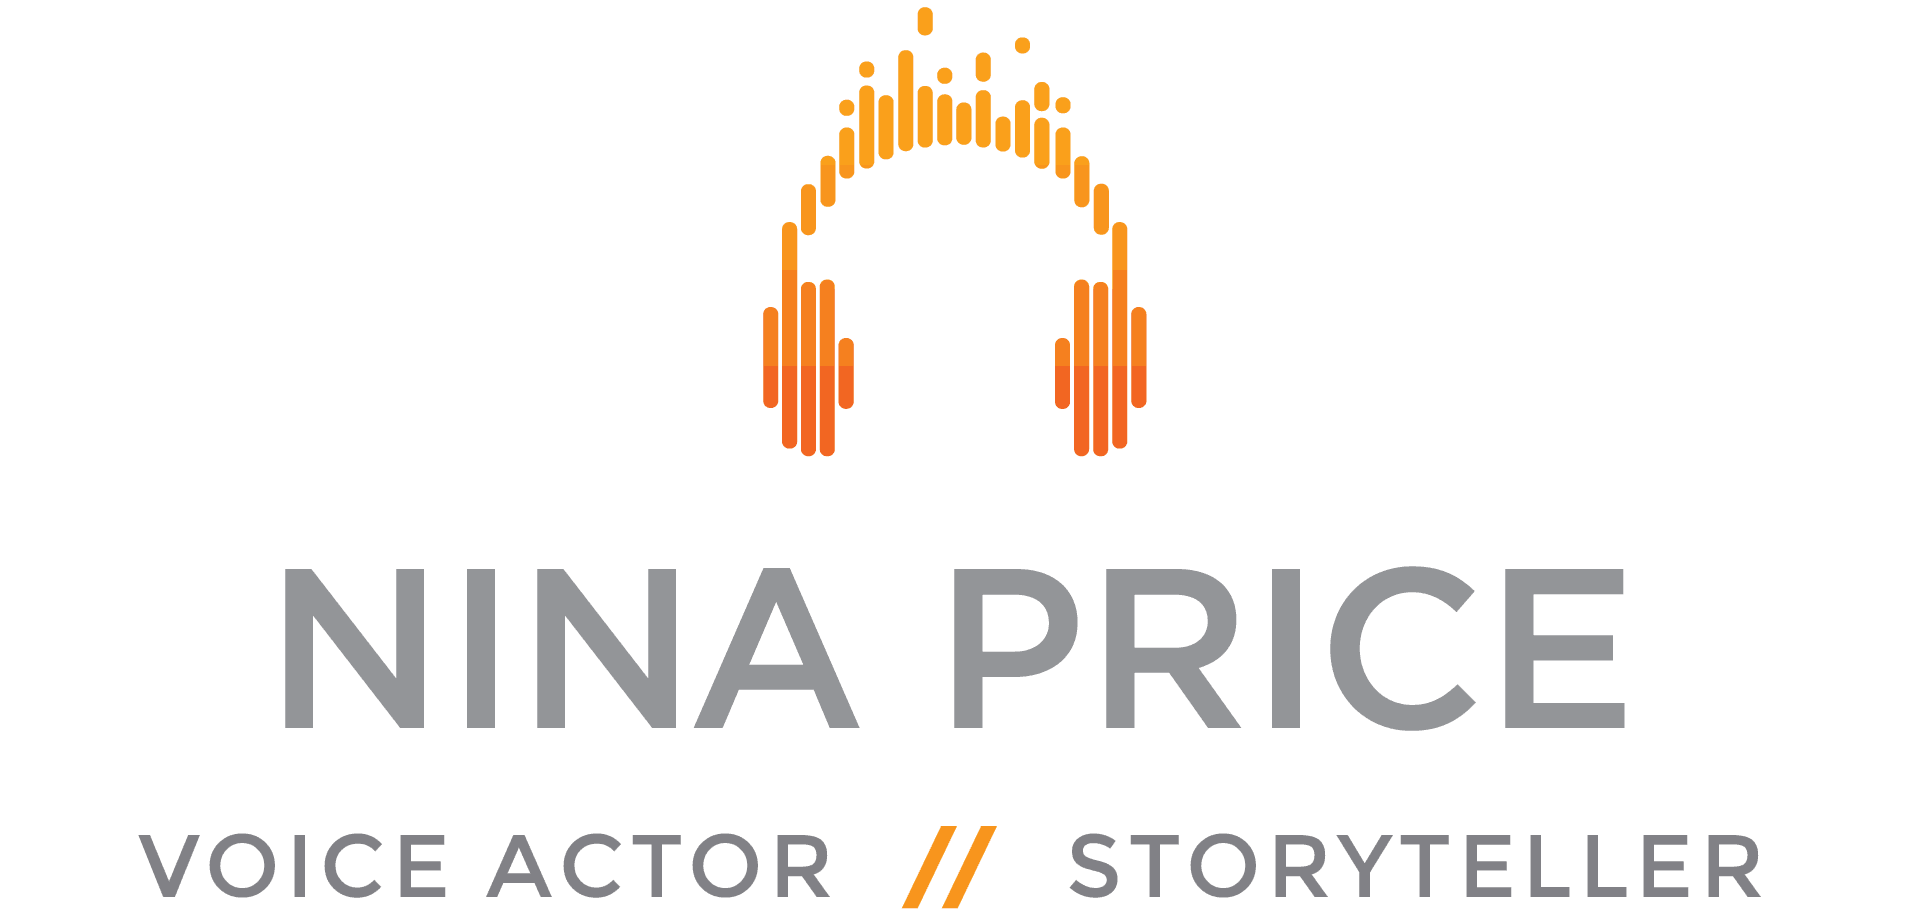 NINA PRICE VOICE ACTOR + STORYTELLER